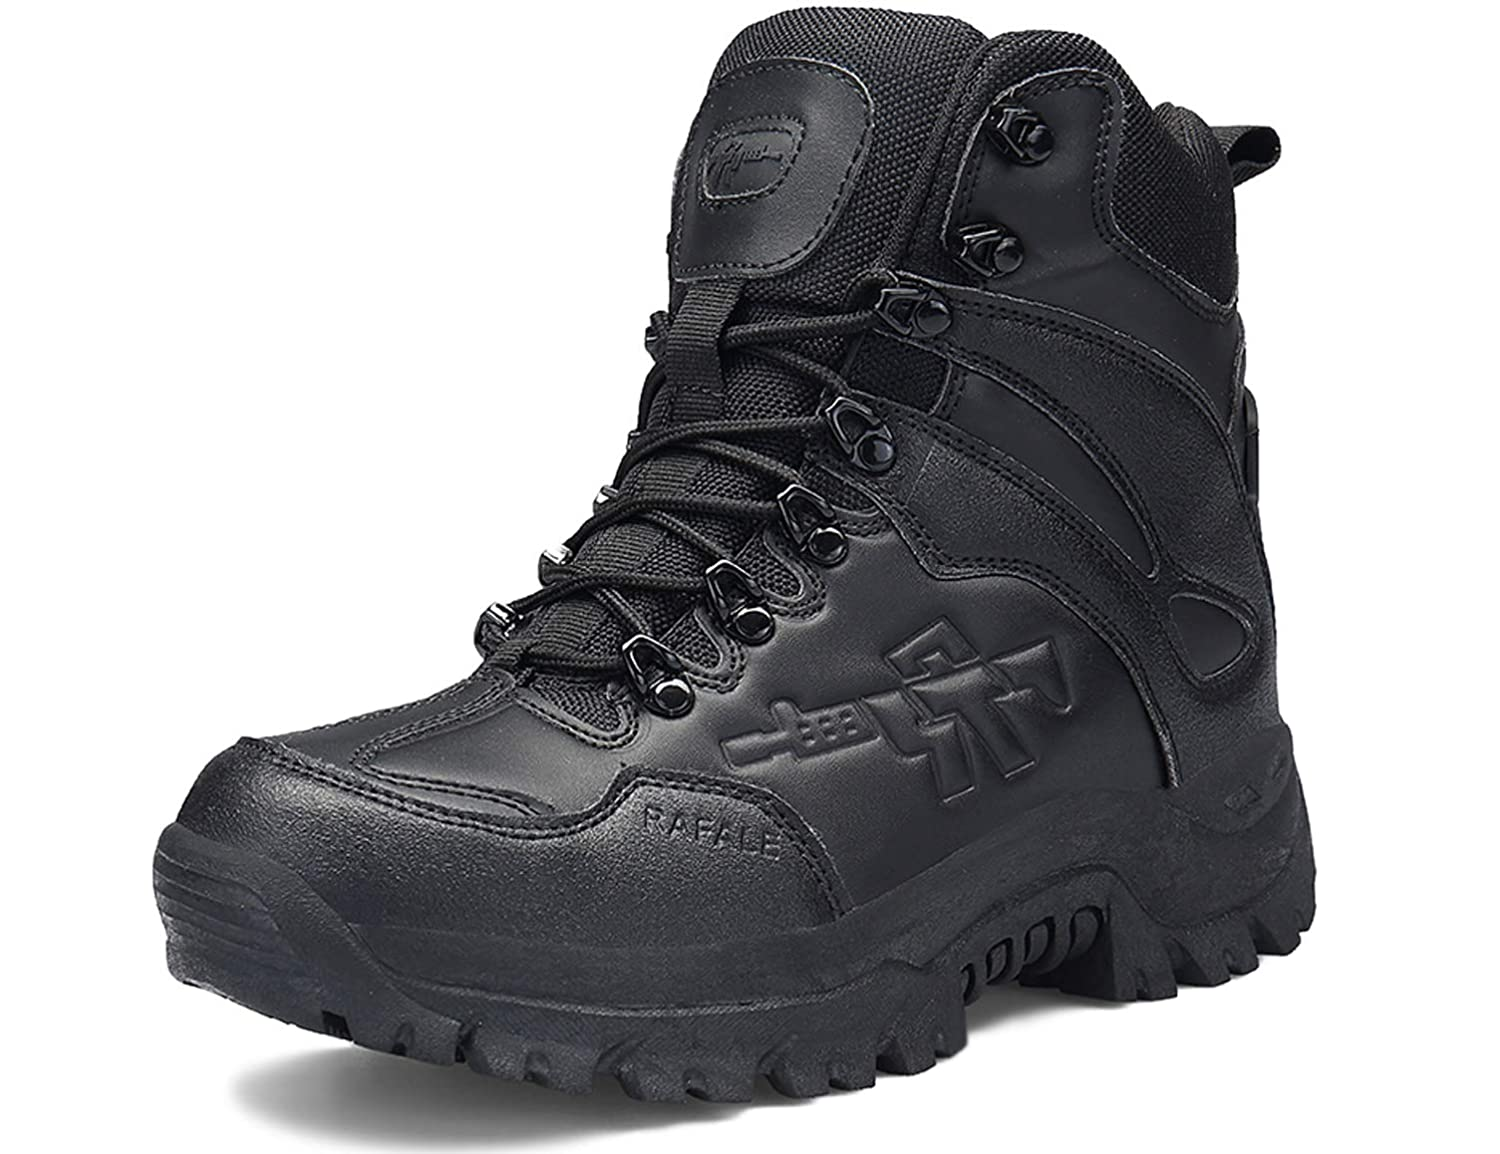 6394576b1c1 SINOES Shoes Work Utility Footwear Military Tactical Men,Mens Army Outdoor  Sports Camping Hiking Work Combat Lace Up Breathable High Top Side Zipper  ...